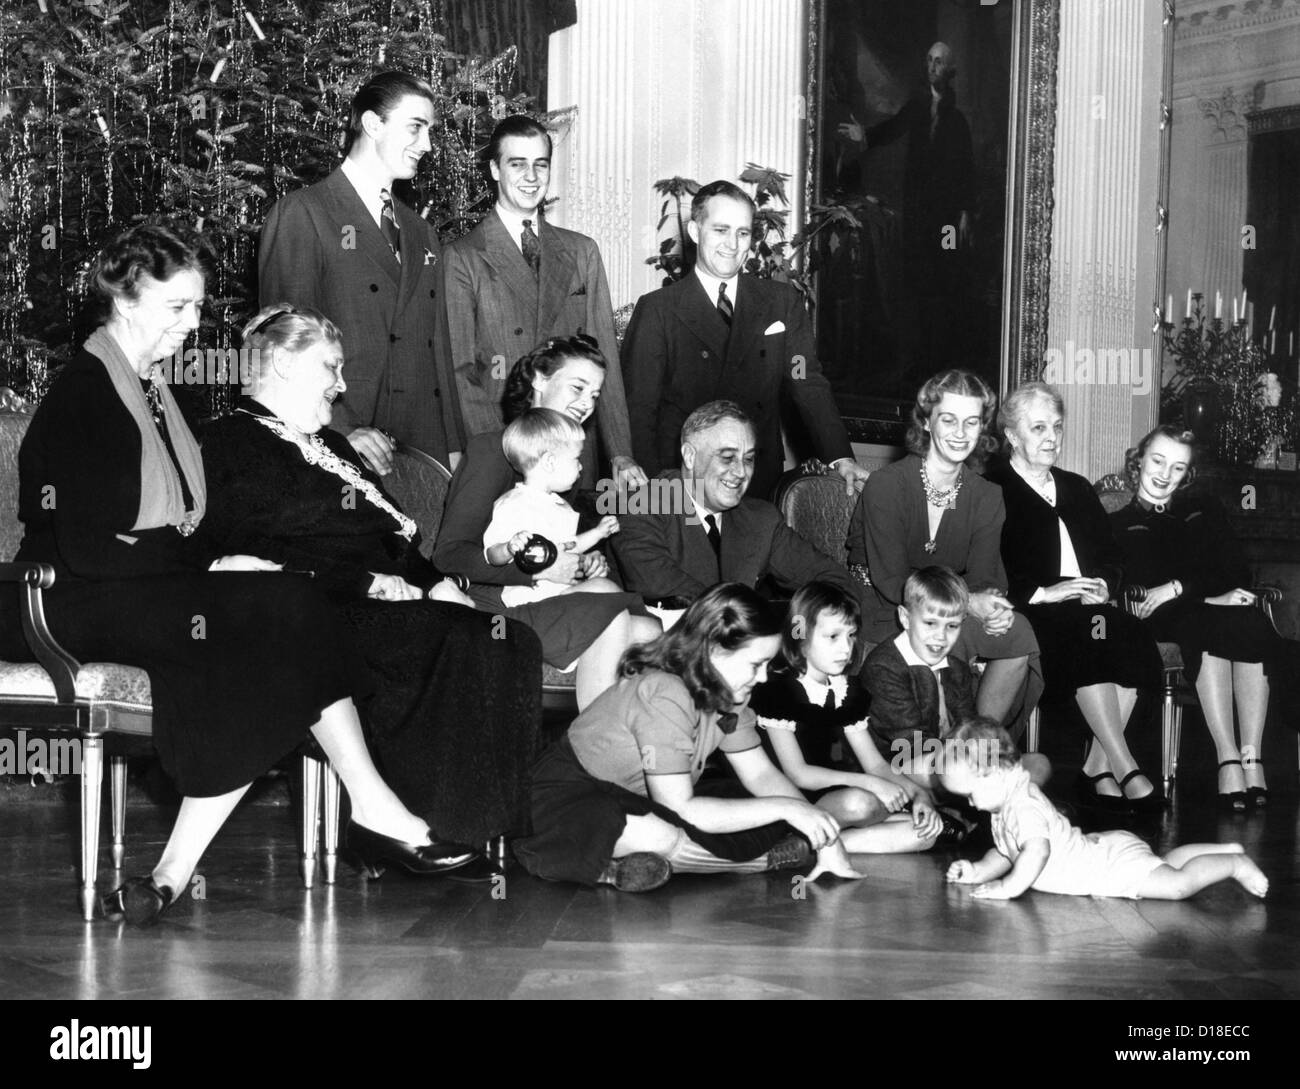 Franklin Roosevelt's Christmas family photo at the White House, 1939. Seated L-R: First Lady Eleanor Roosevelt; Stock Photo